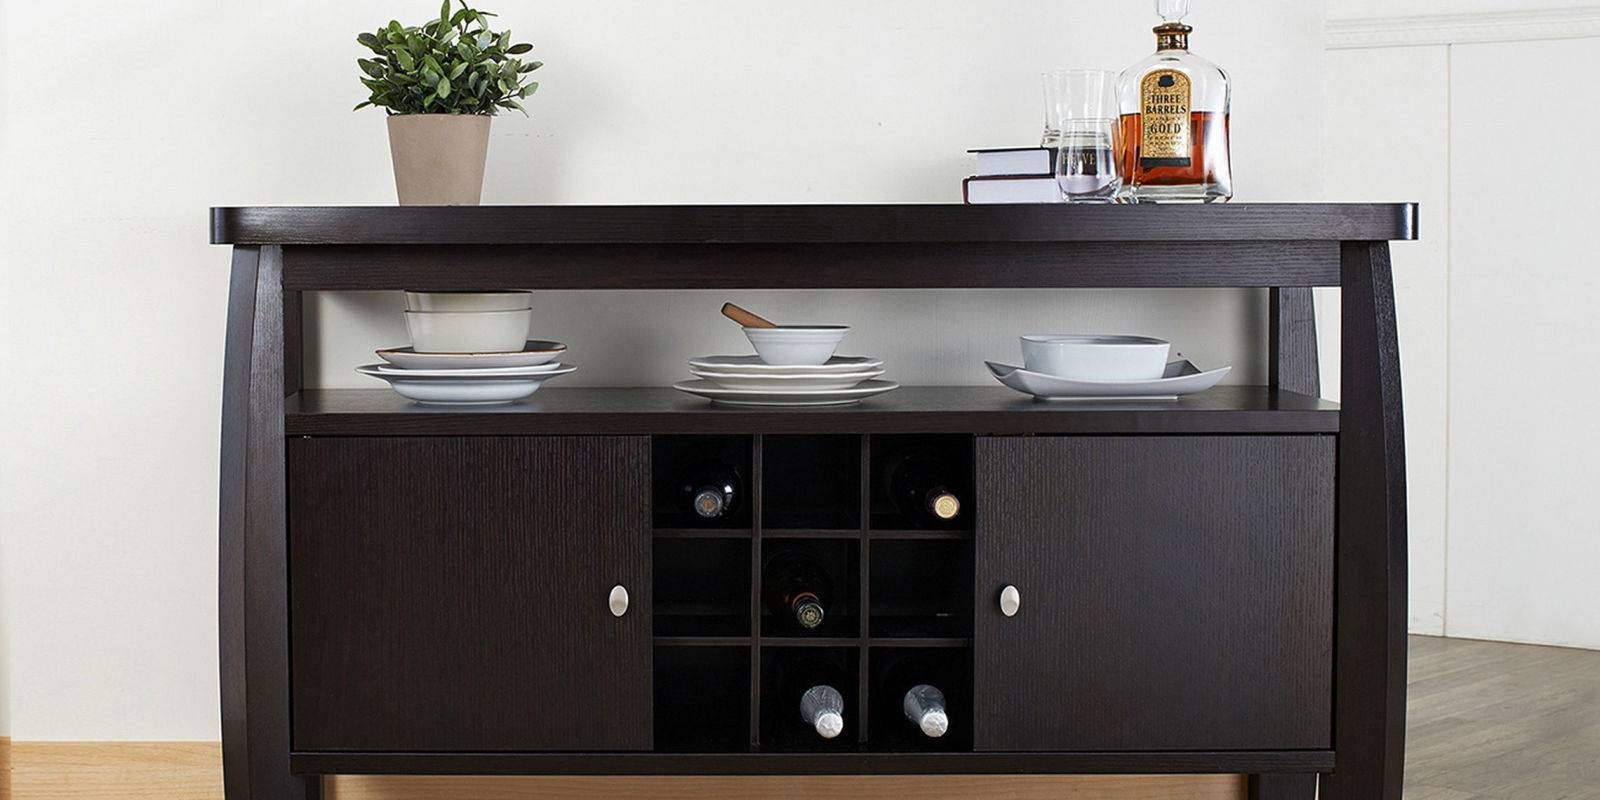 11 Best Sideboards And Buffets In 2018 - Reviews Of Sideboards with Sideboard Buffet Tables (Image 1 of 15)